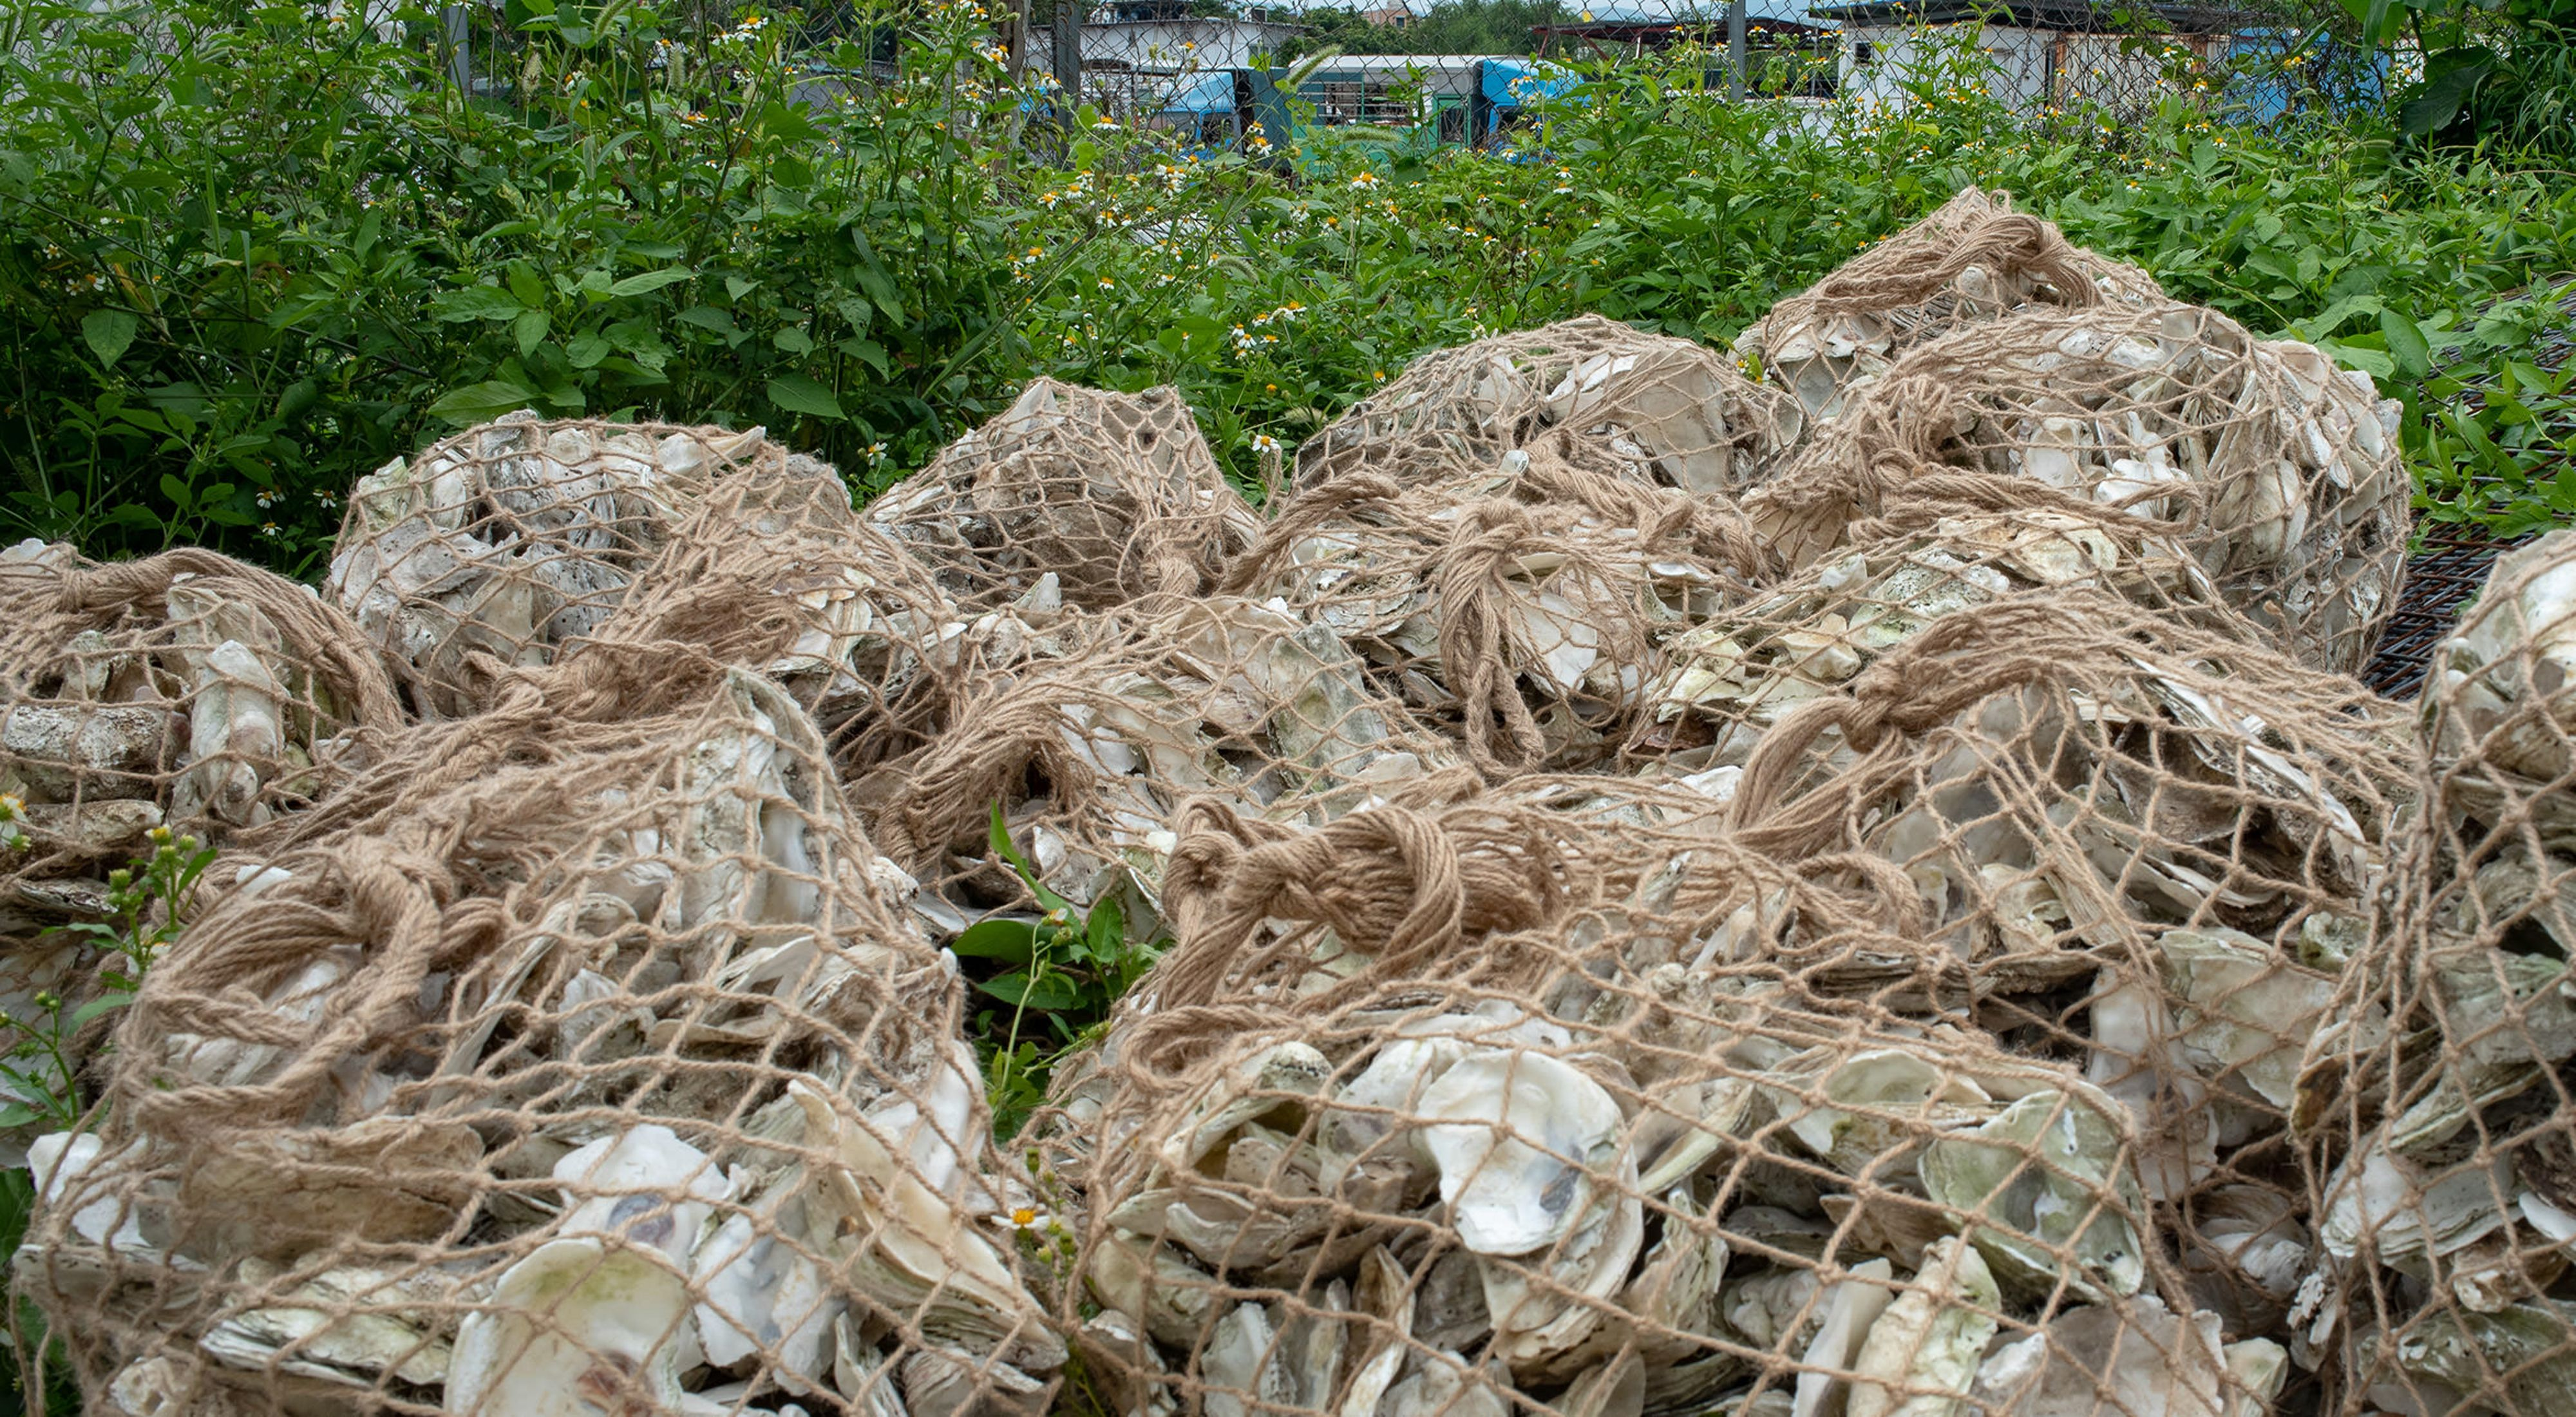 can be recycled and used to form new oyster reefs.